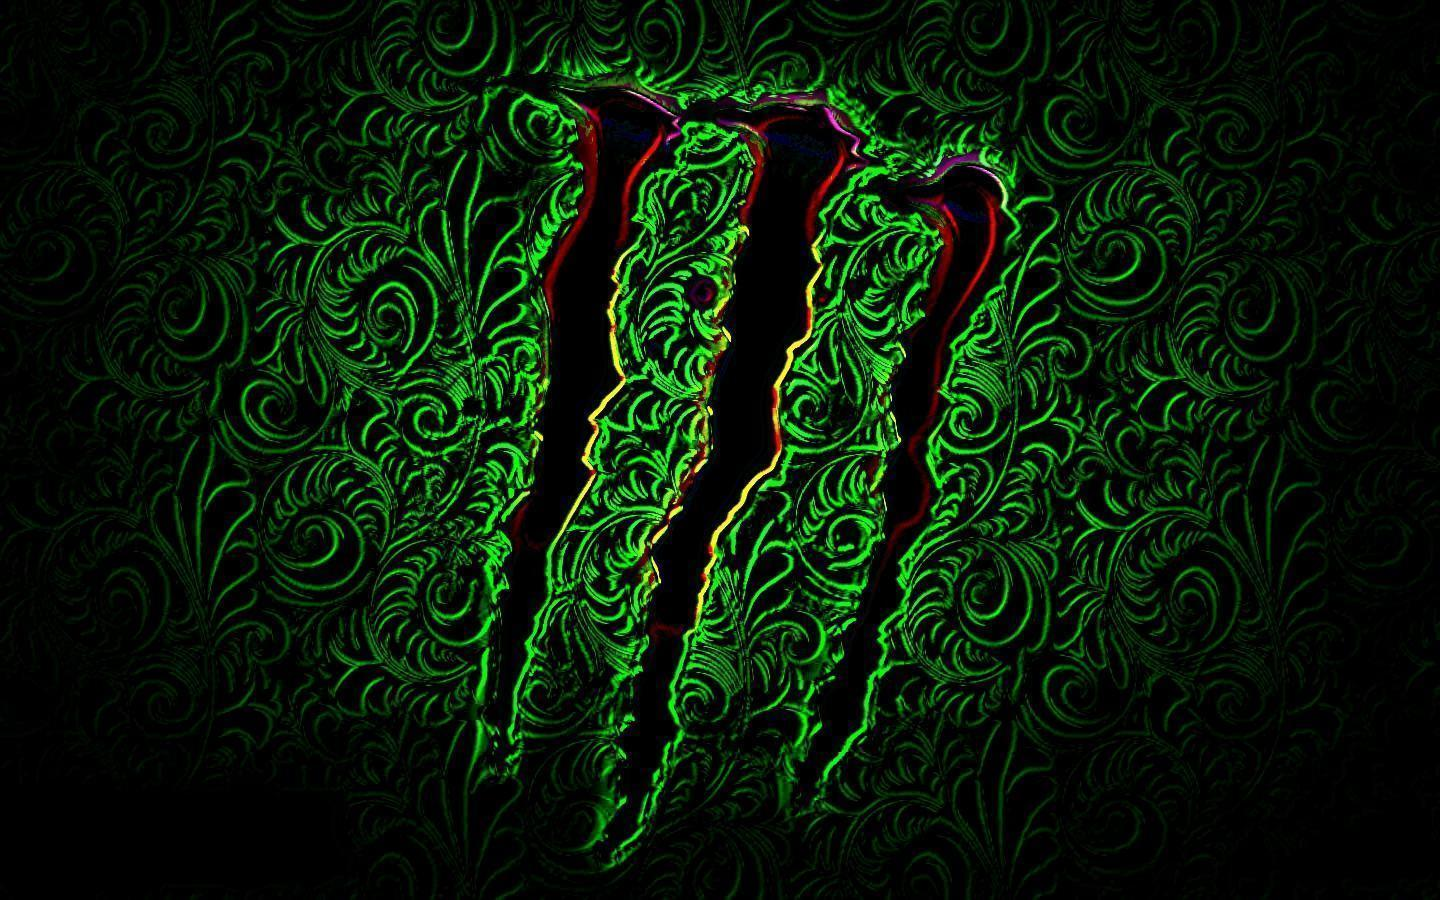 Free monster wallpapers wallpaper cave monster wallpapers backgrounds download free monster monster en voltagebd Images